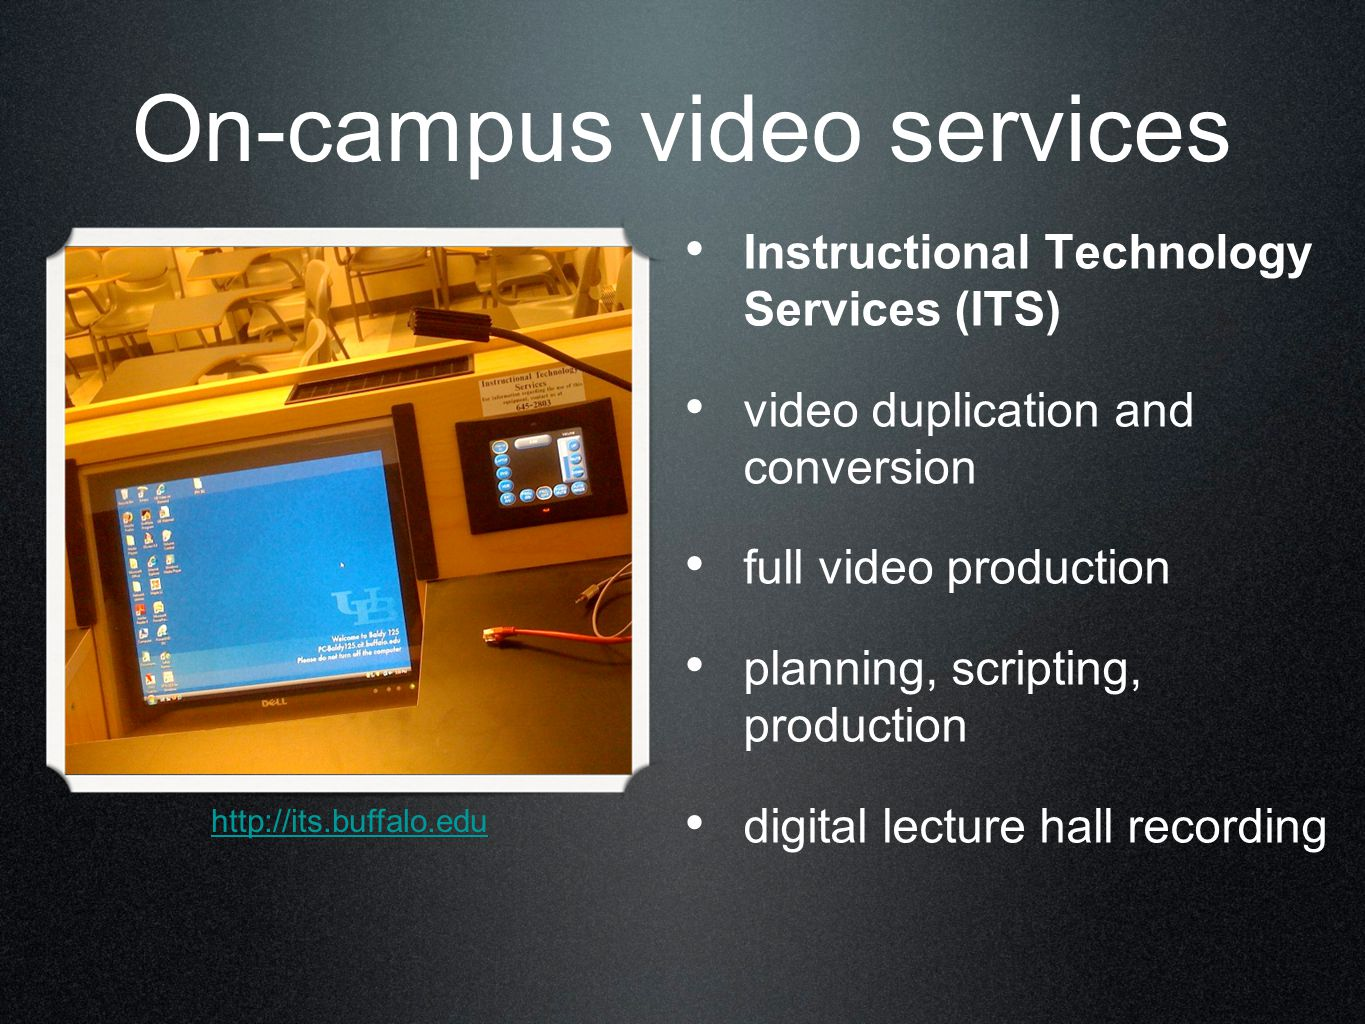 On-campus video services Instructional Technology Services (ITS) video duplication and conversion full video production planning, scripting, production digital lecture hall recording http://its.buffalo.edu